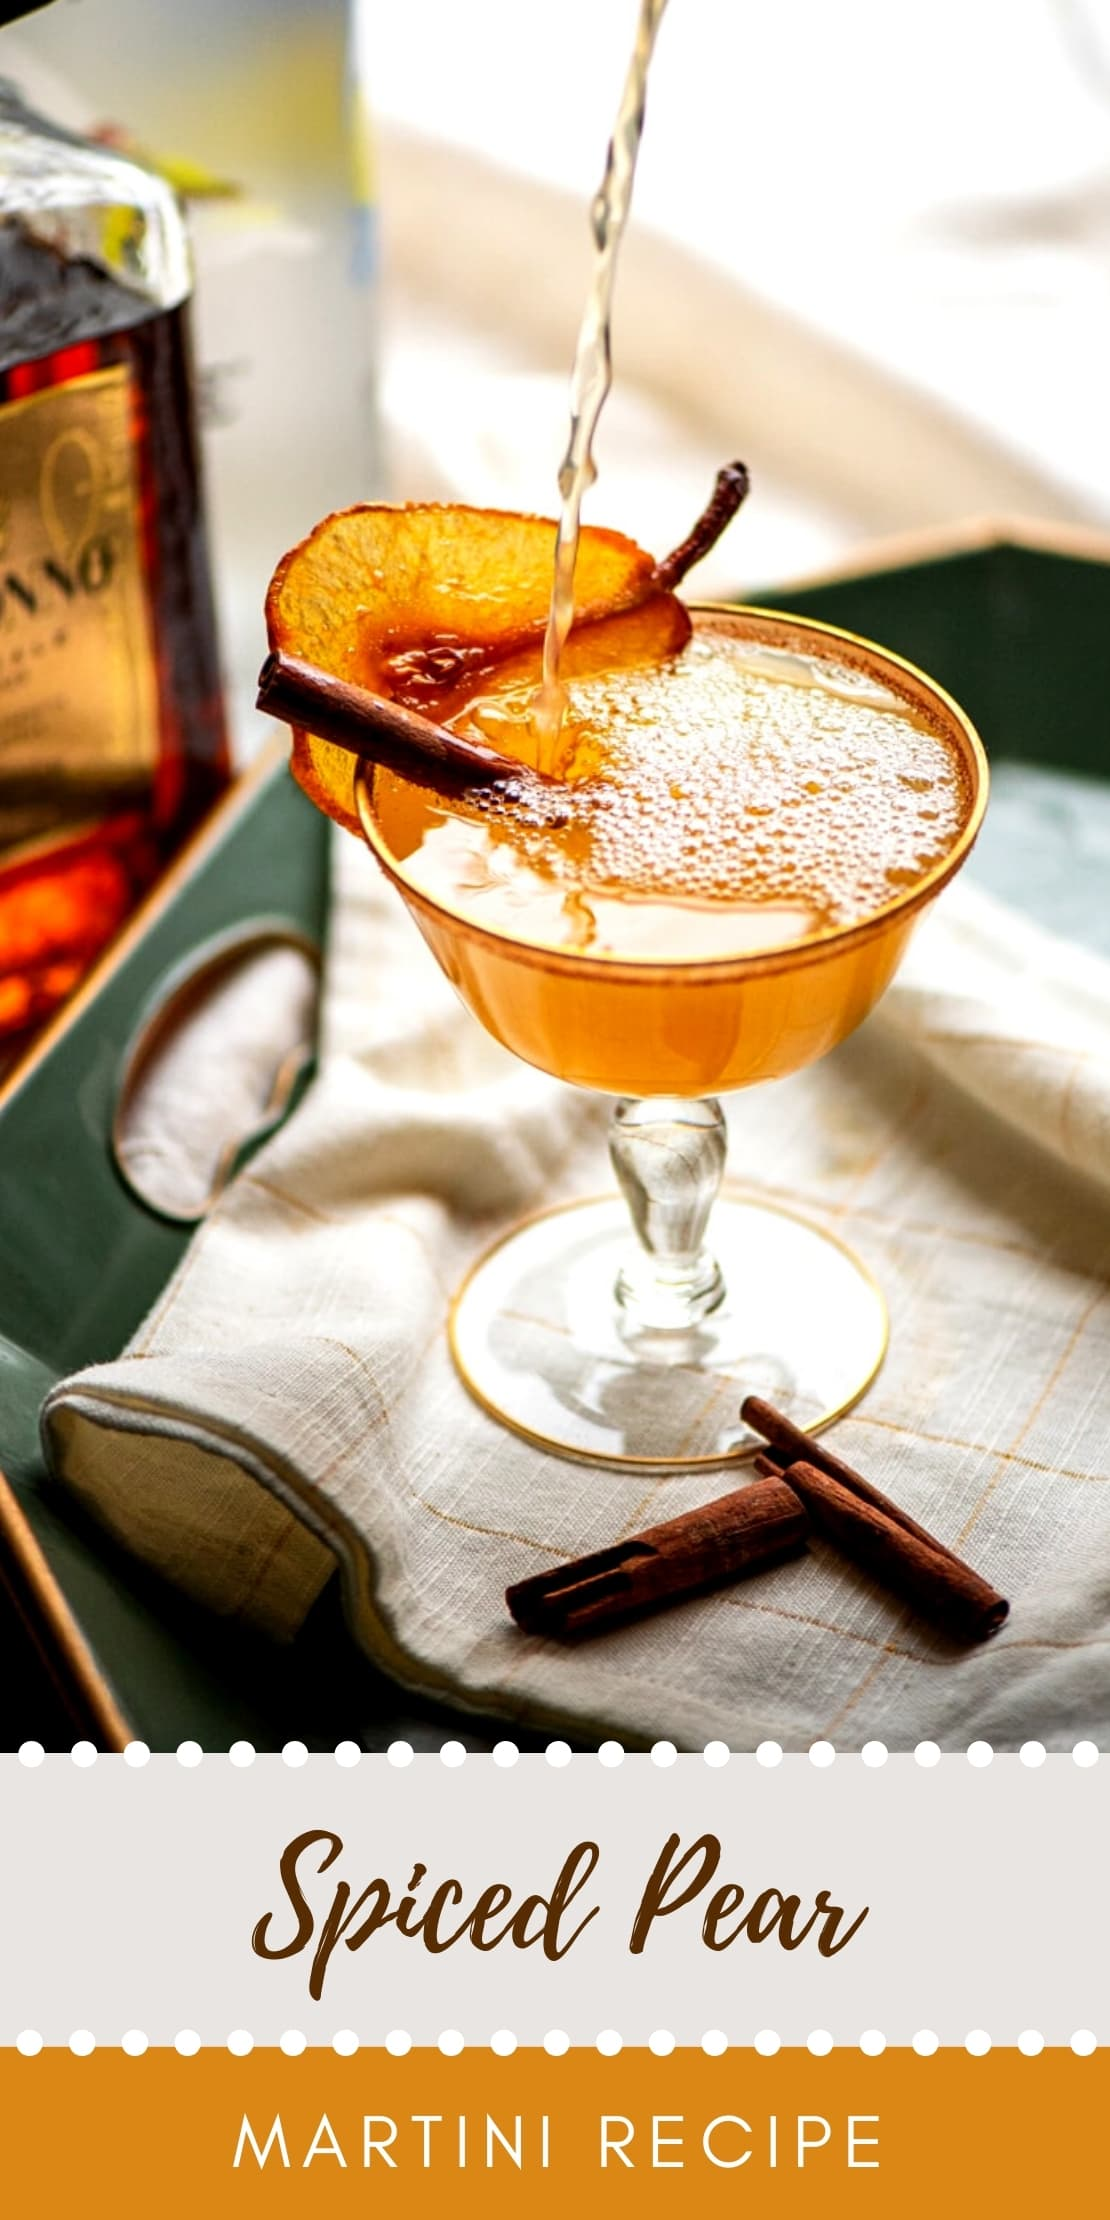 Spiced Pear Martini - Spiced Pear Martini with Amaretto and Cardamom Bitters